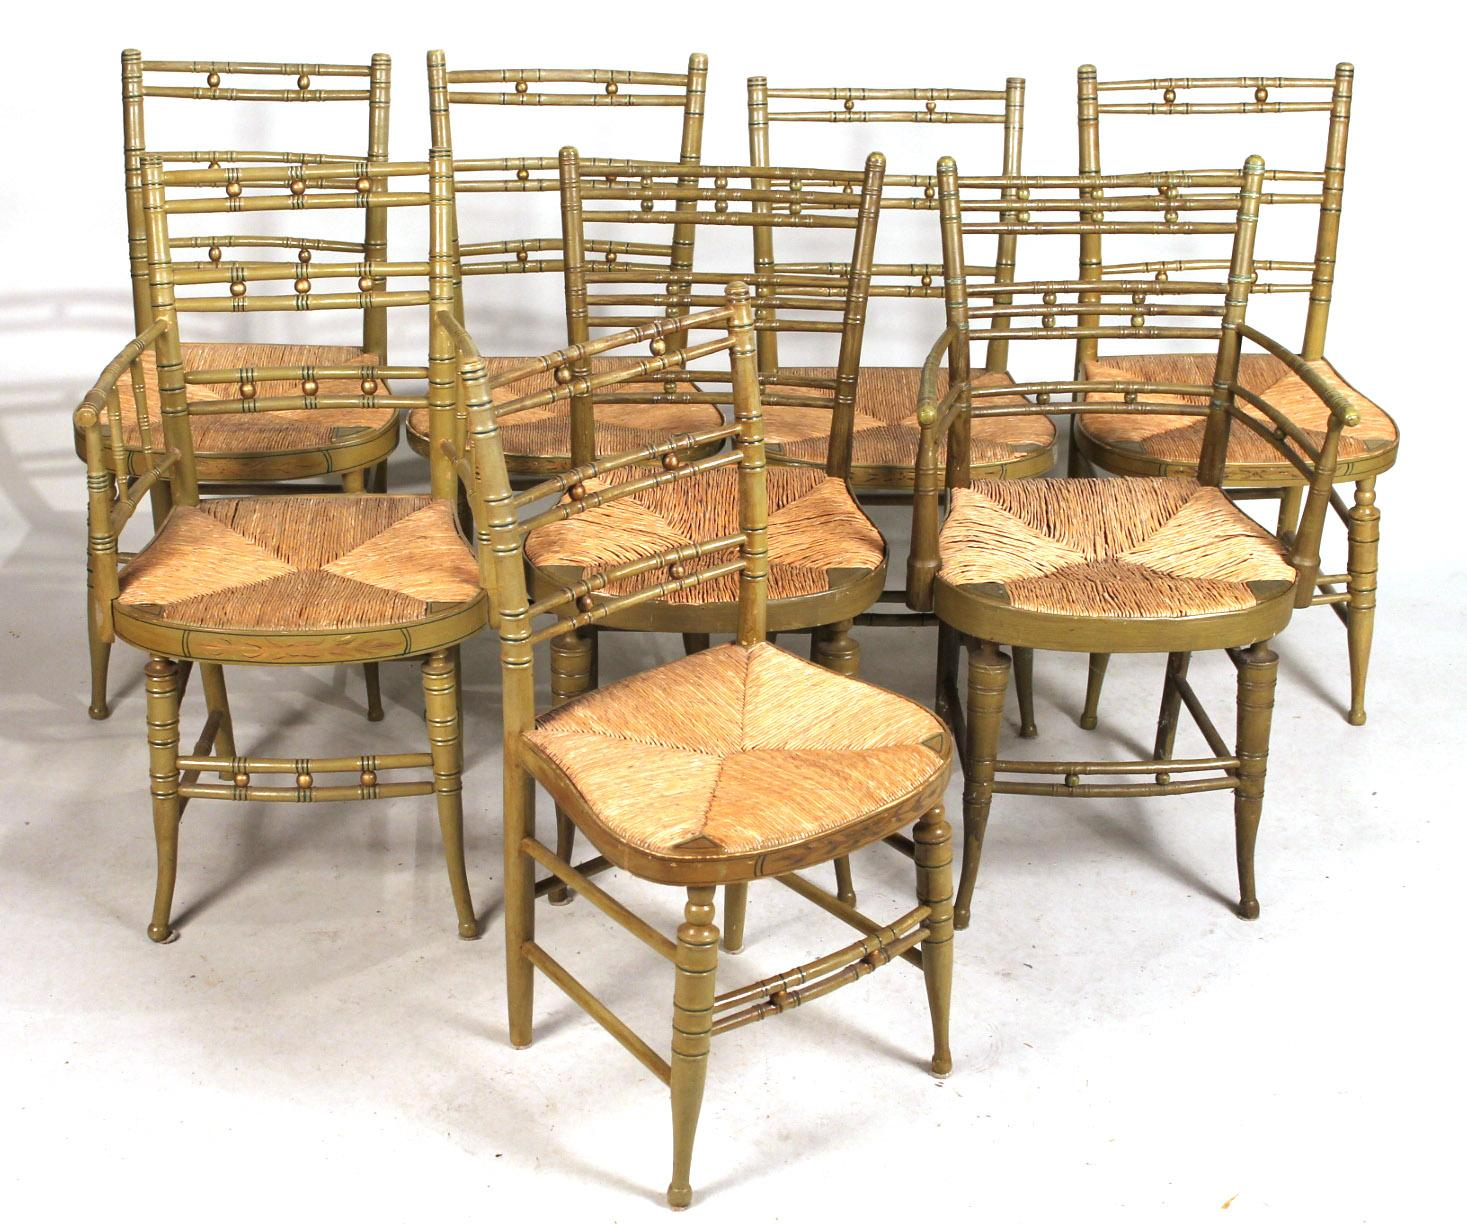 IGavel Auctions Eight Similar Victorian Green Painted Rush Seat Dining Chair